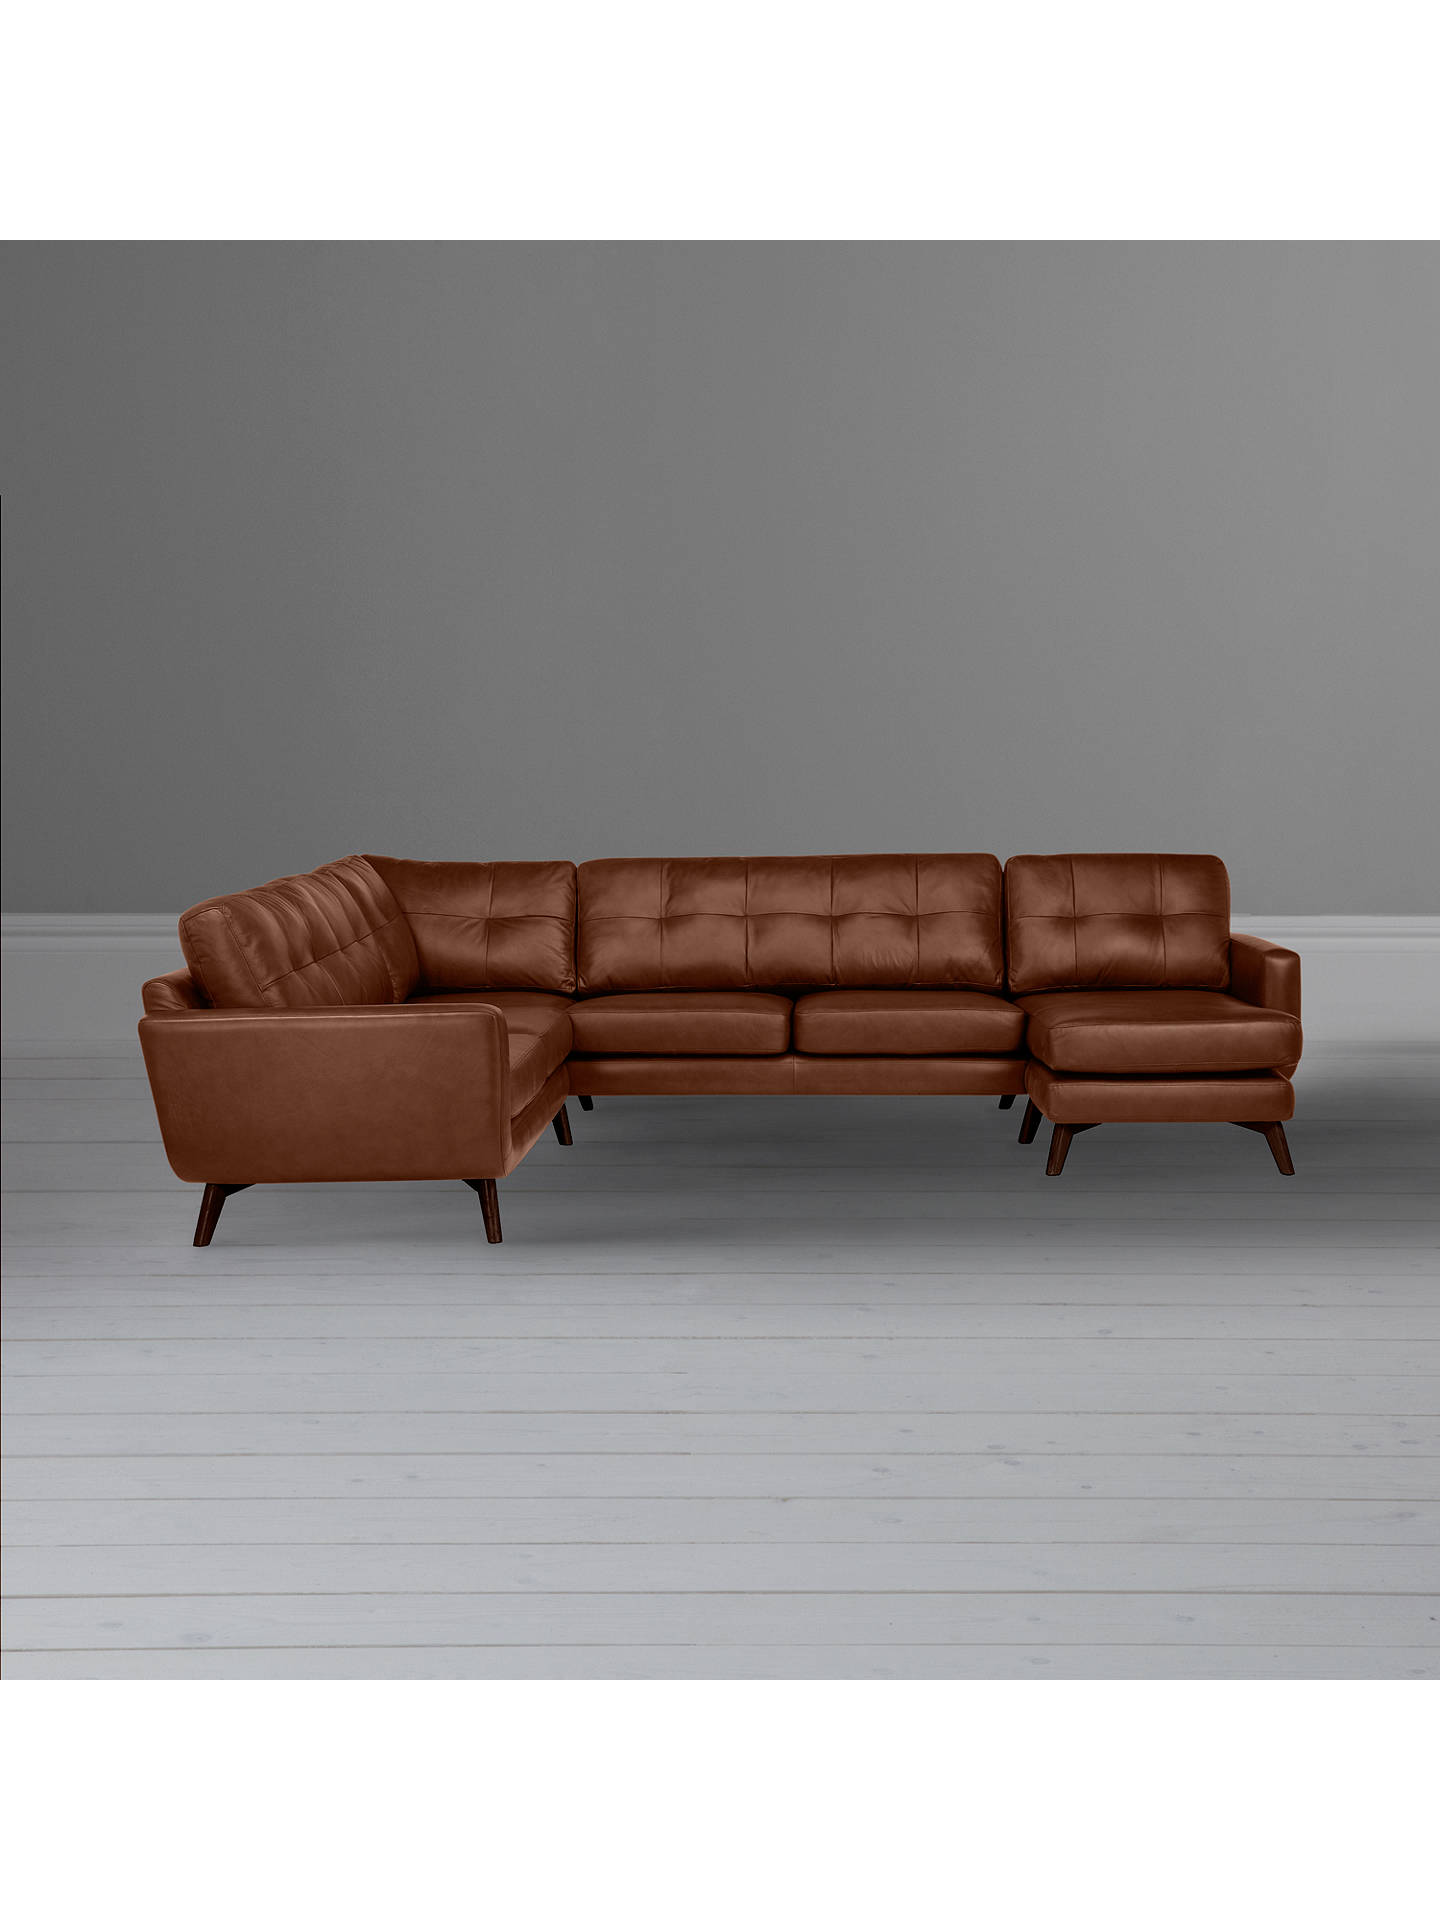 BuyJohn Lewis & Partners Barbican Leather RHF Grand Corner Chaise End Sofa, Dark Leg, Contempo Castanga Online at johnlewis.com